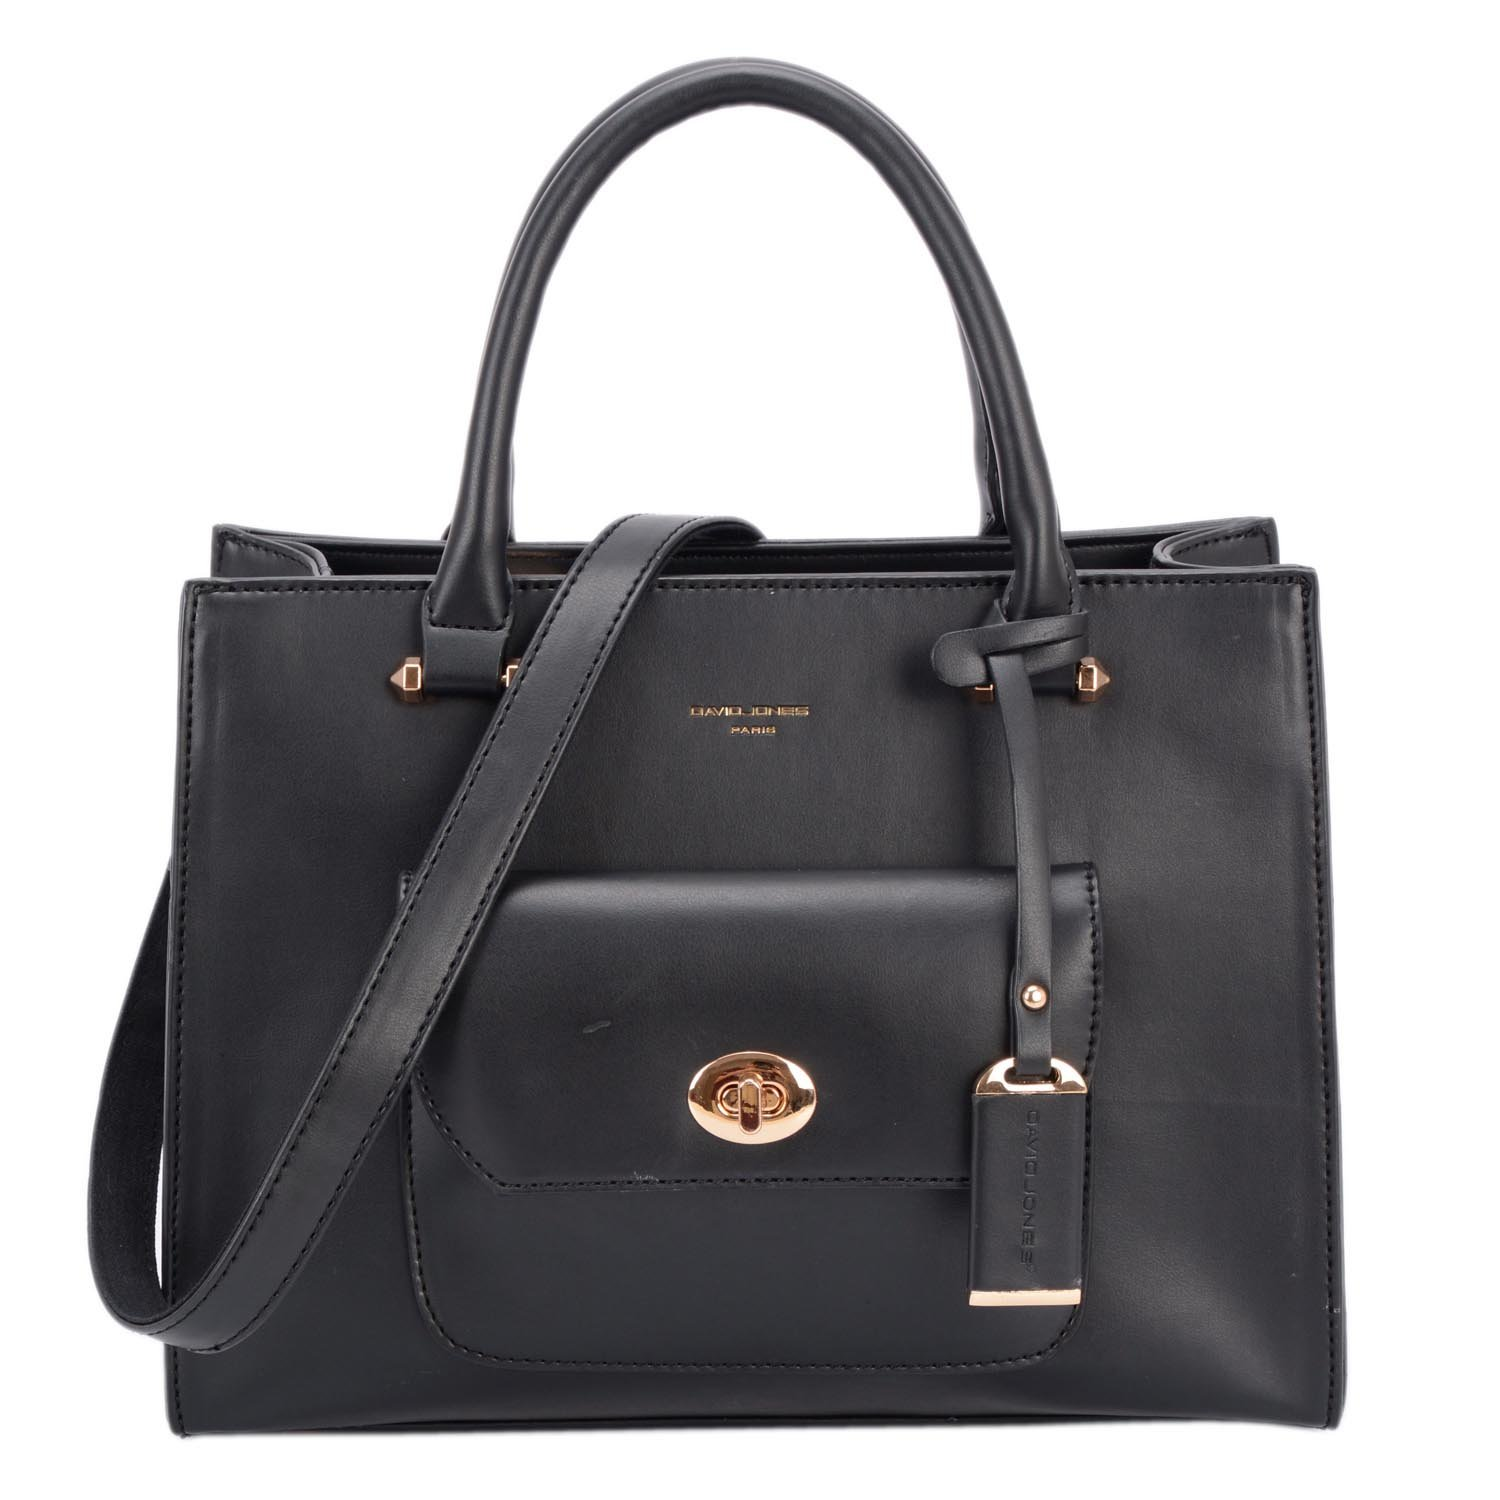 Womens Black Vegan Leather Structured Top Handle Purse with Compartments Crossbody Tote Bags